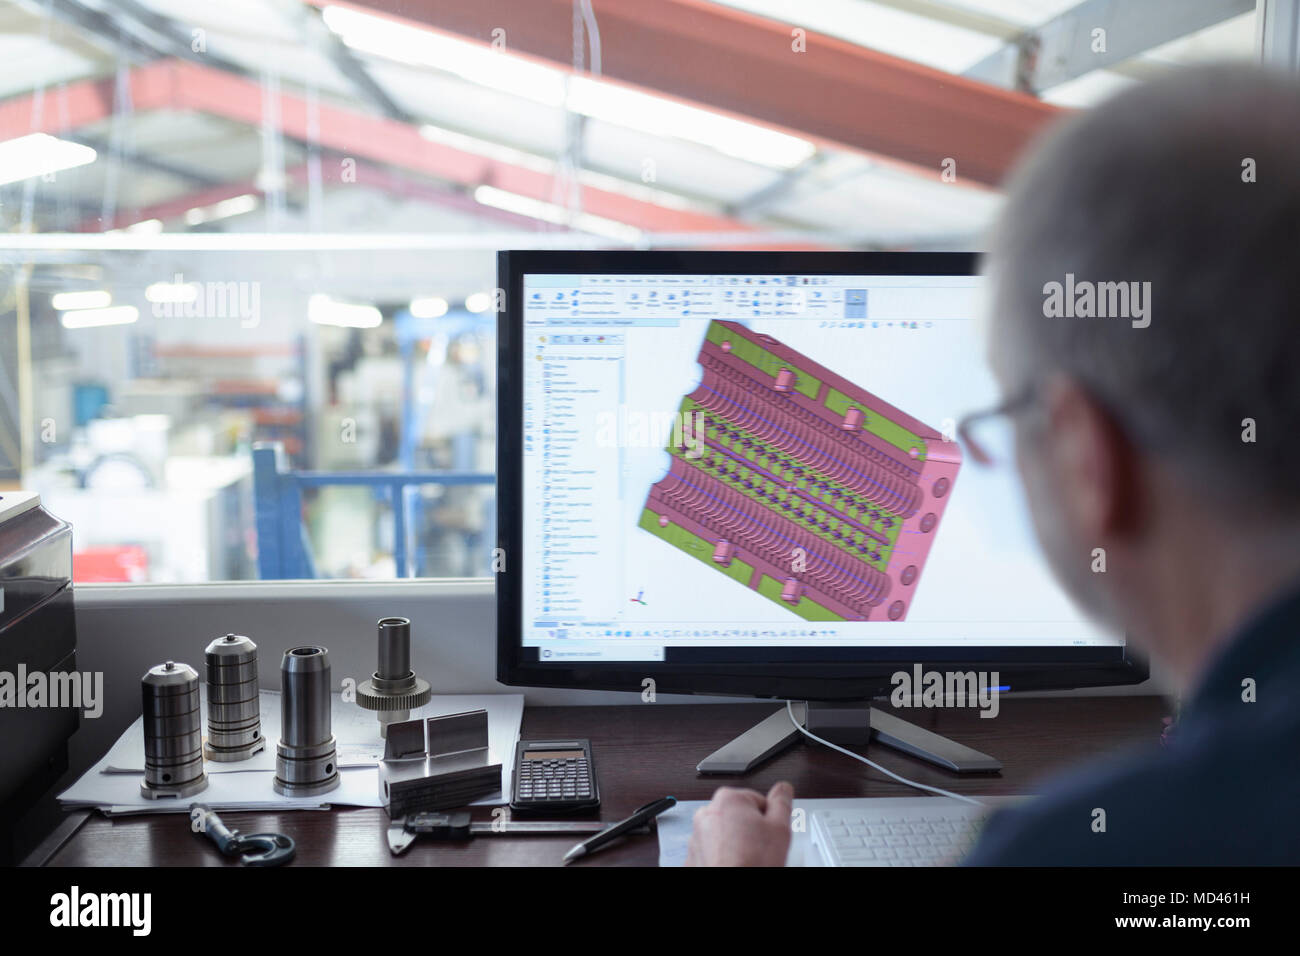 Engineer using CAD program in precision engineering factory - Stock Image